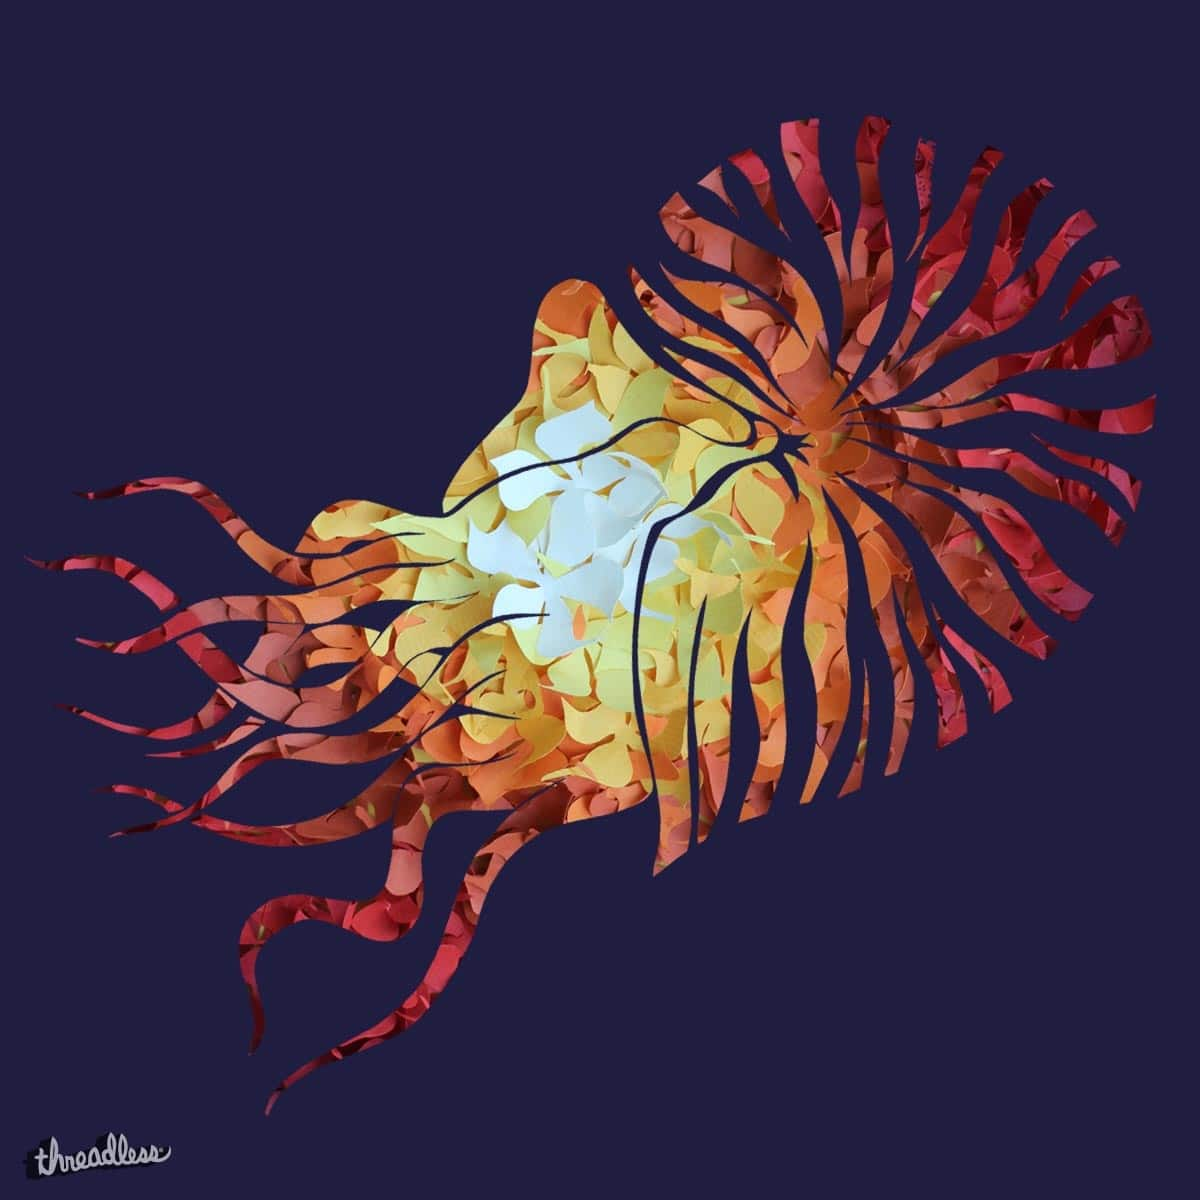 Nautilus by MidnightMagpie on Threadless